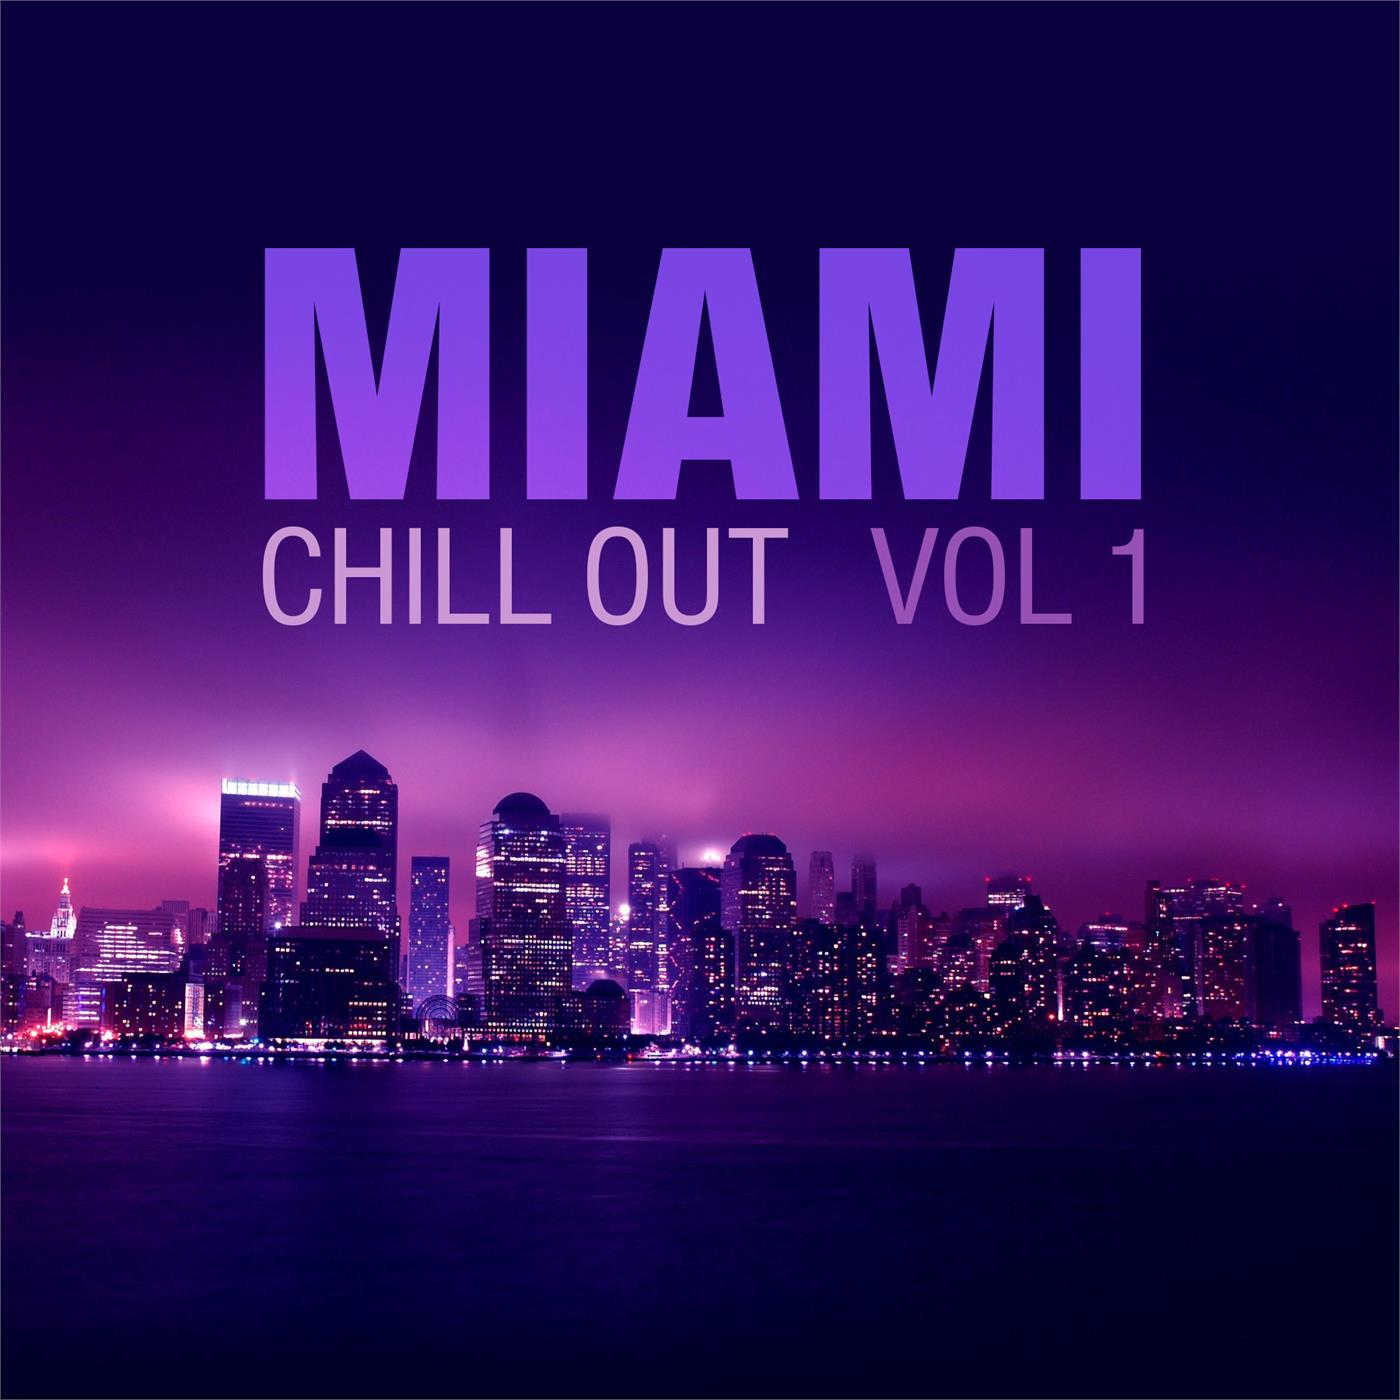 Club Miami Chill Out